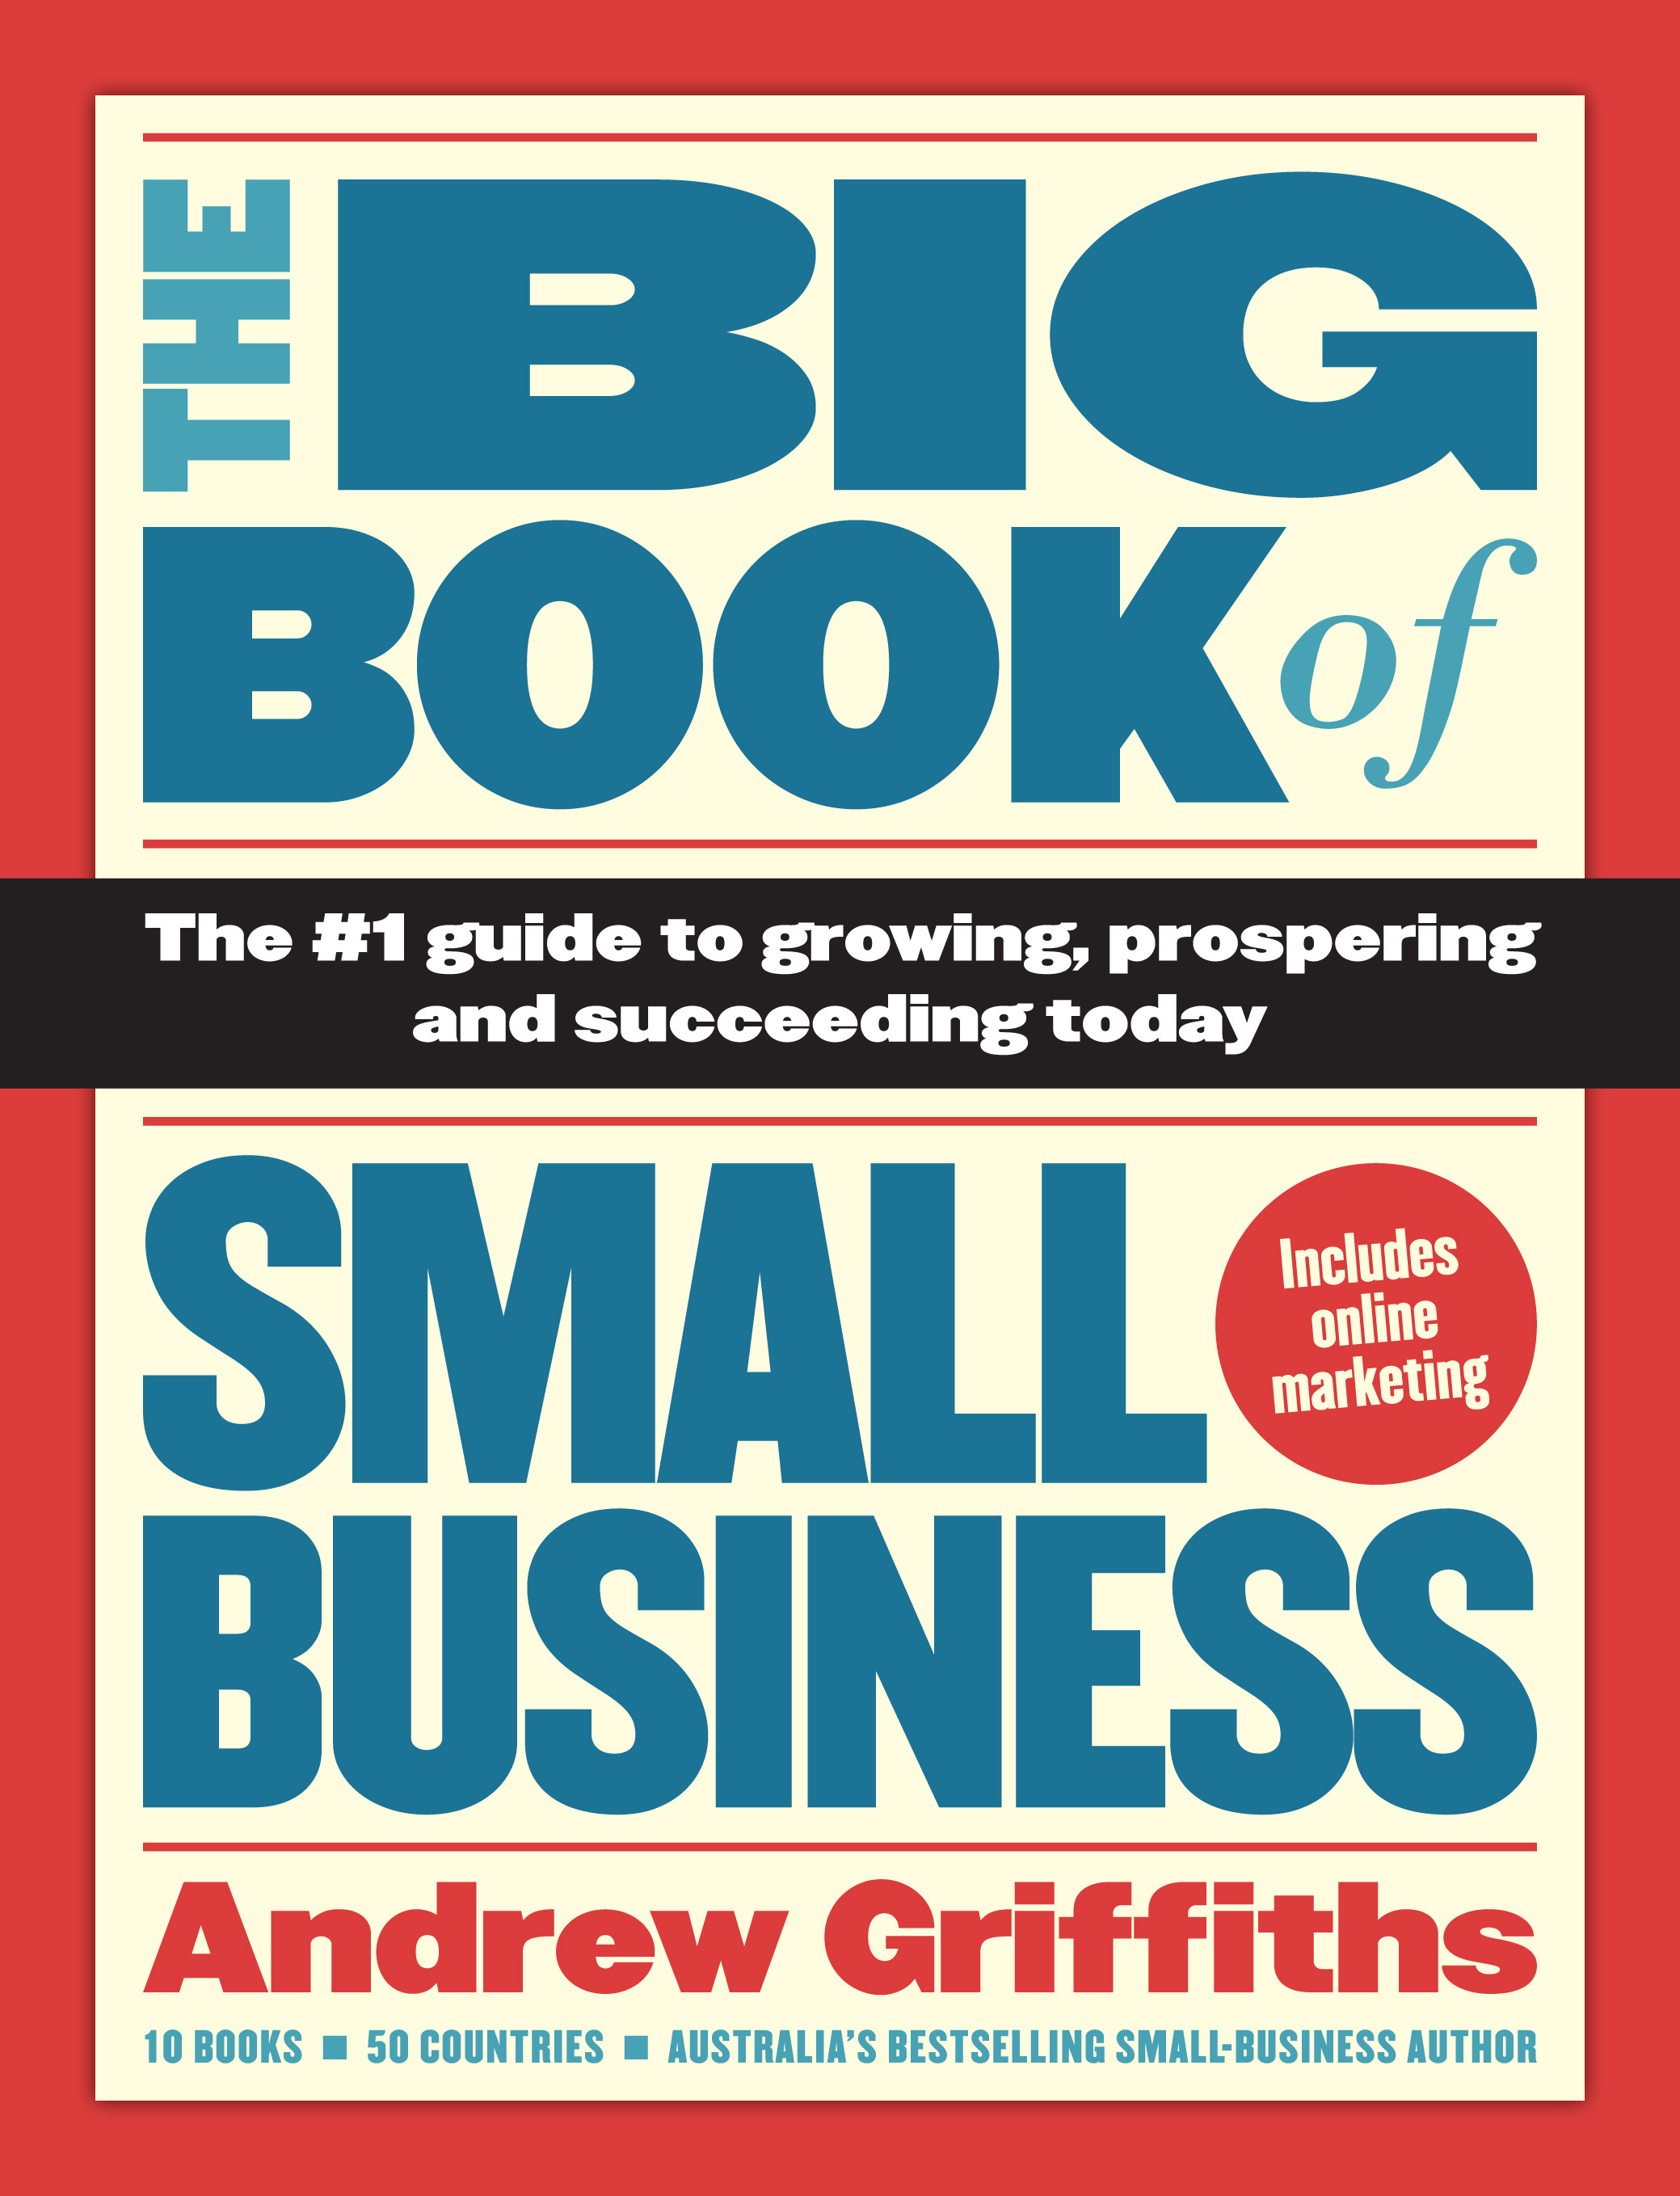 Business Book Covers : Media resources